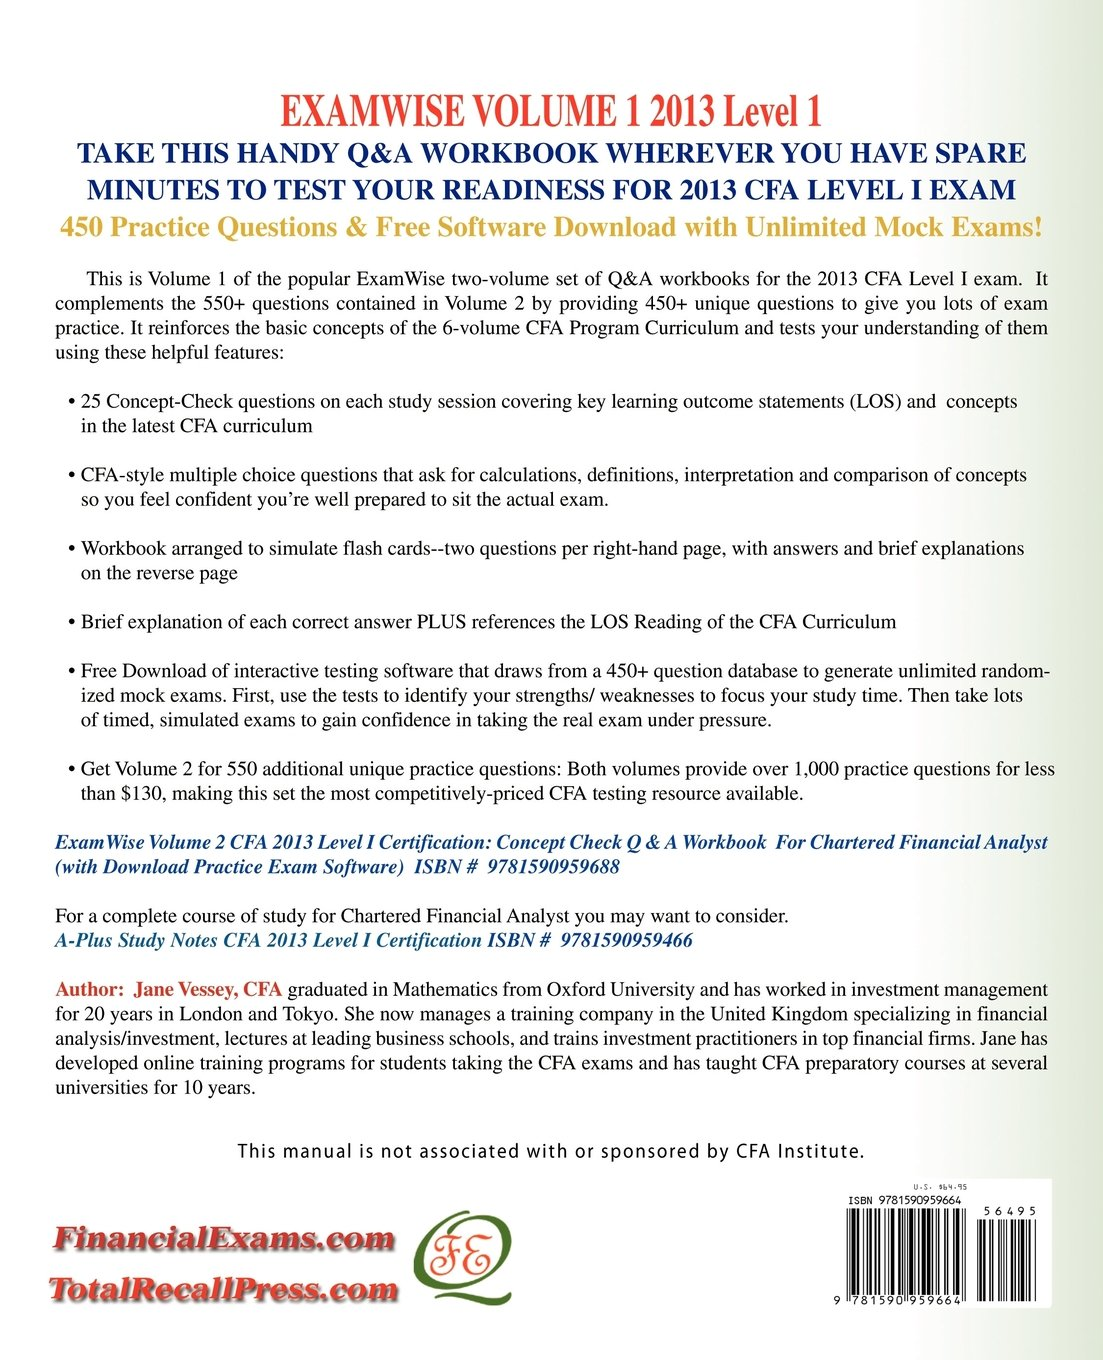 Buy Examwise Volume 1 For 2013 Cfa Level I Certification The First